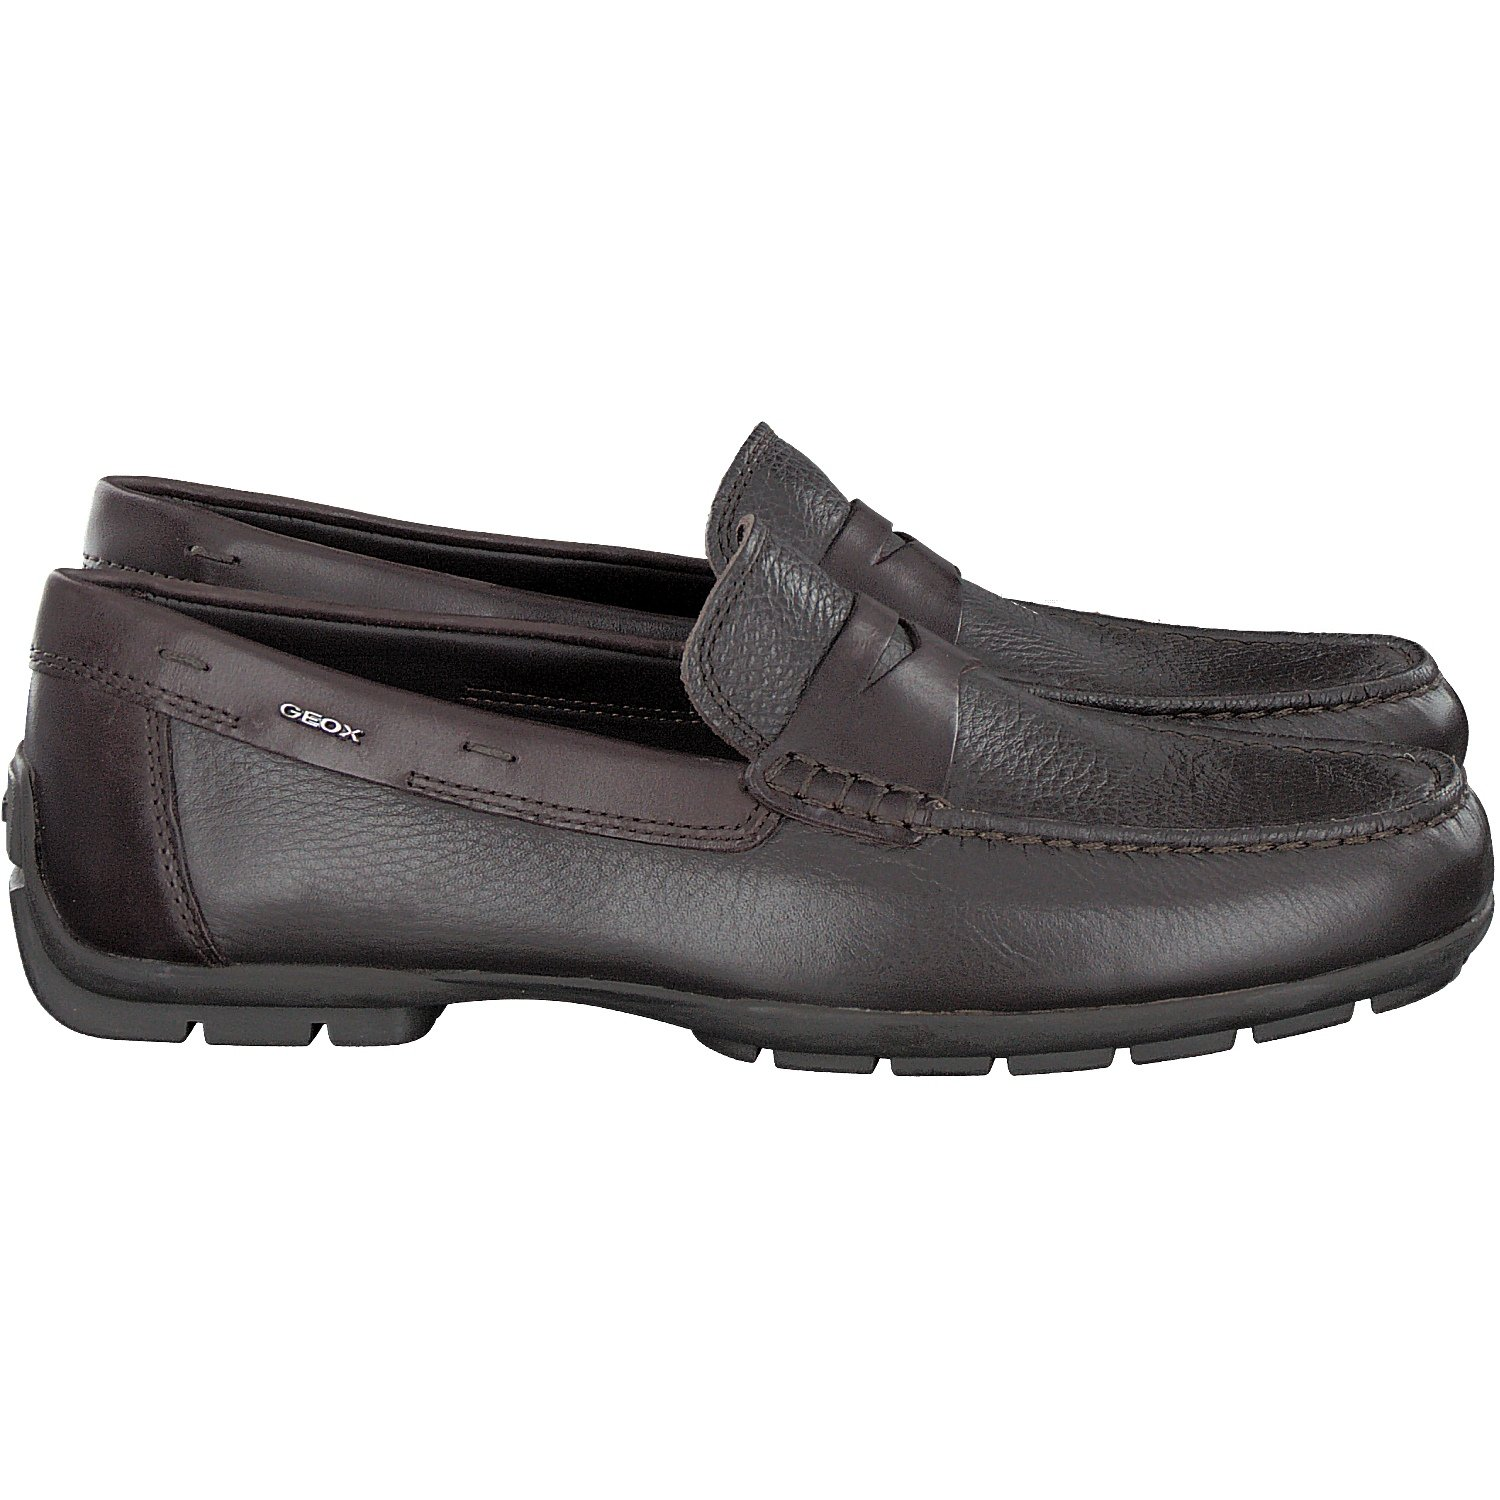 Amazon.com | Geox U Monet W 2FIT D Mens Leather Moccasins Shoes | Loafers & Slip-Ons